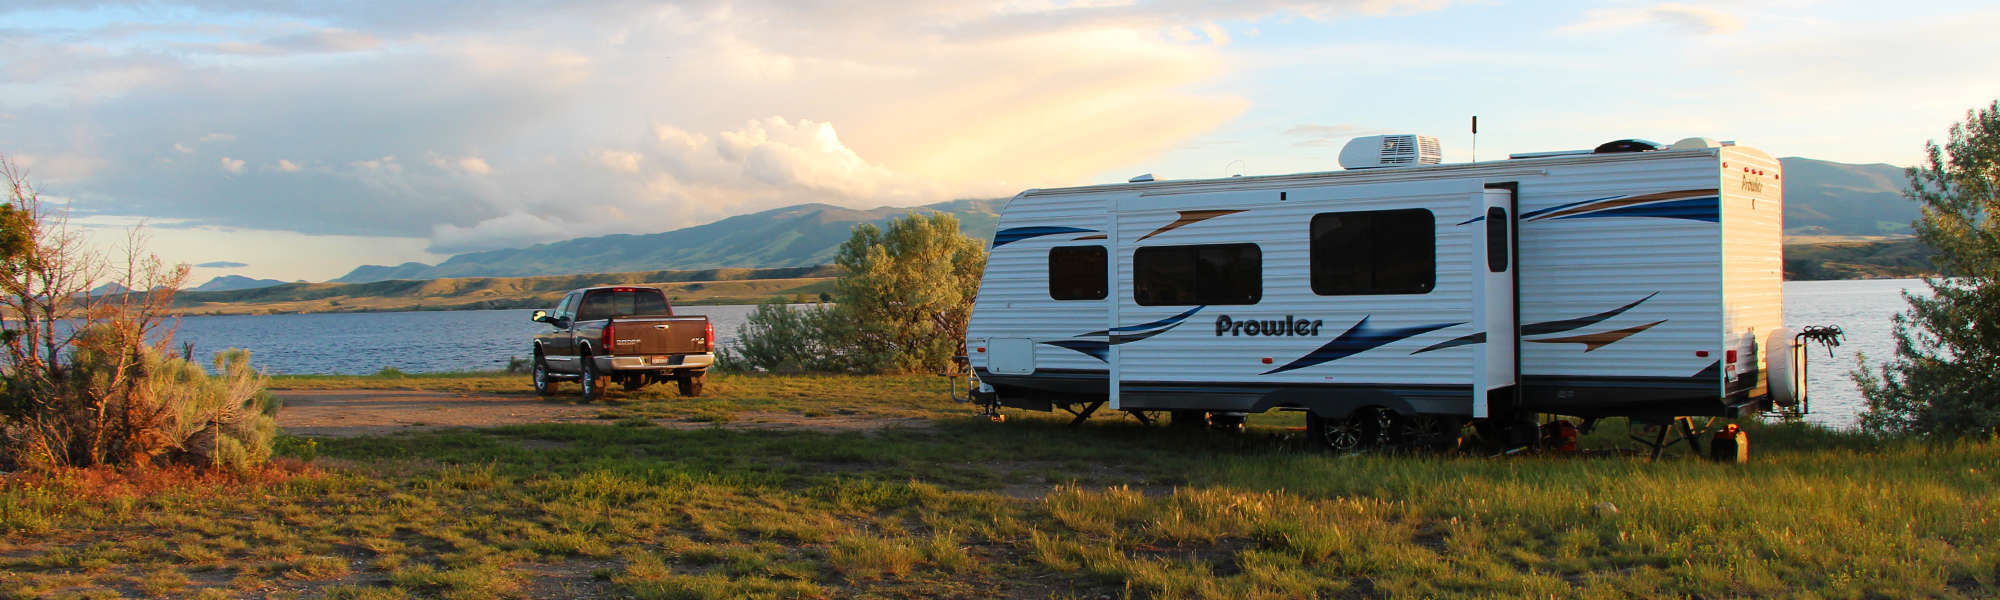 best-rv-5th-wheel-travel-trailer-tires-review-buying-guide